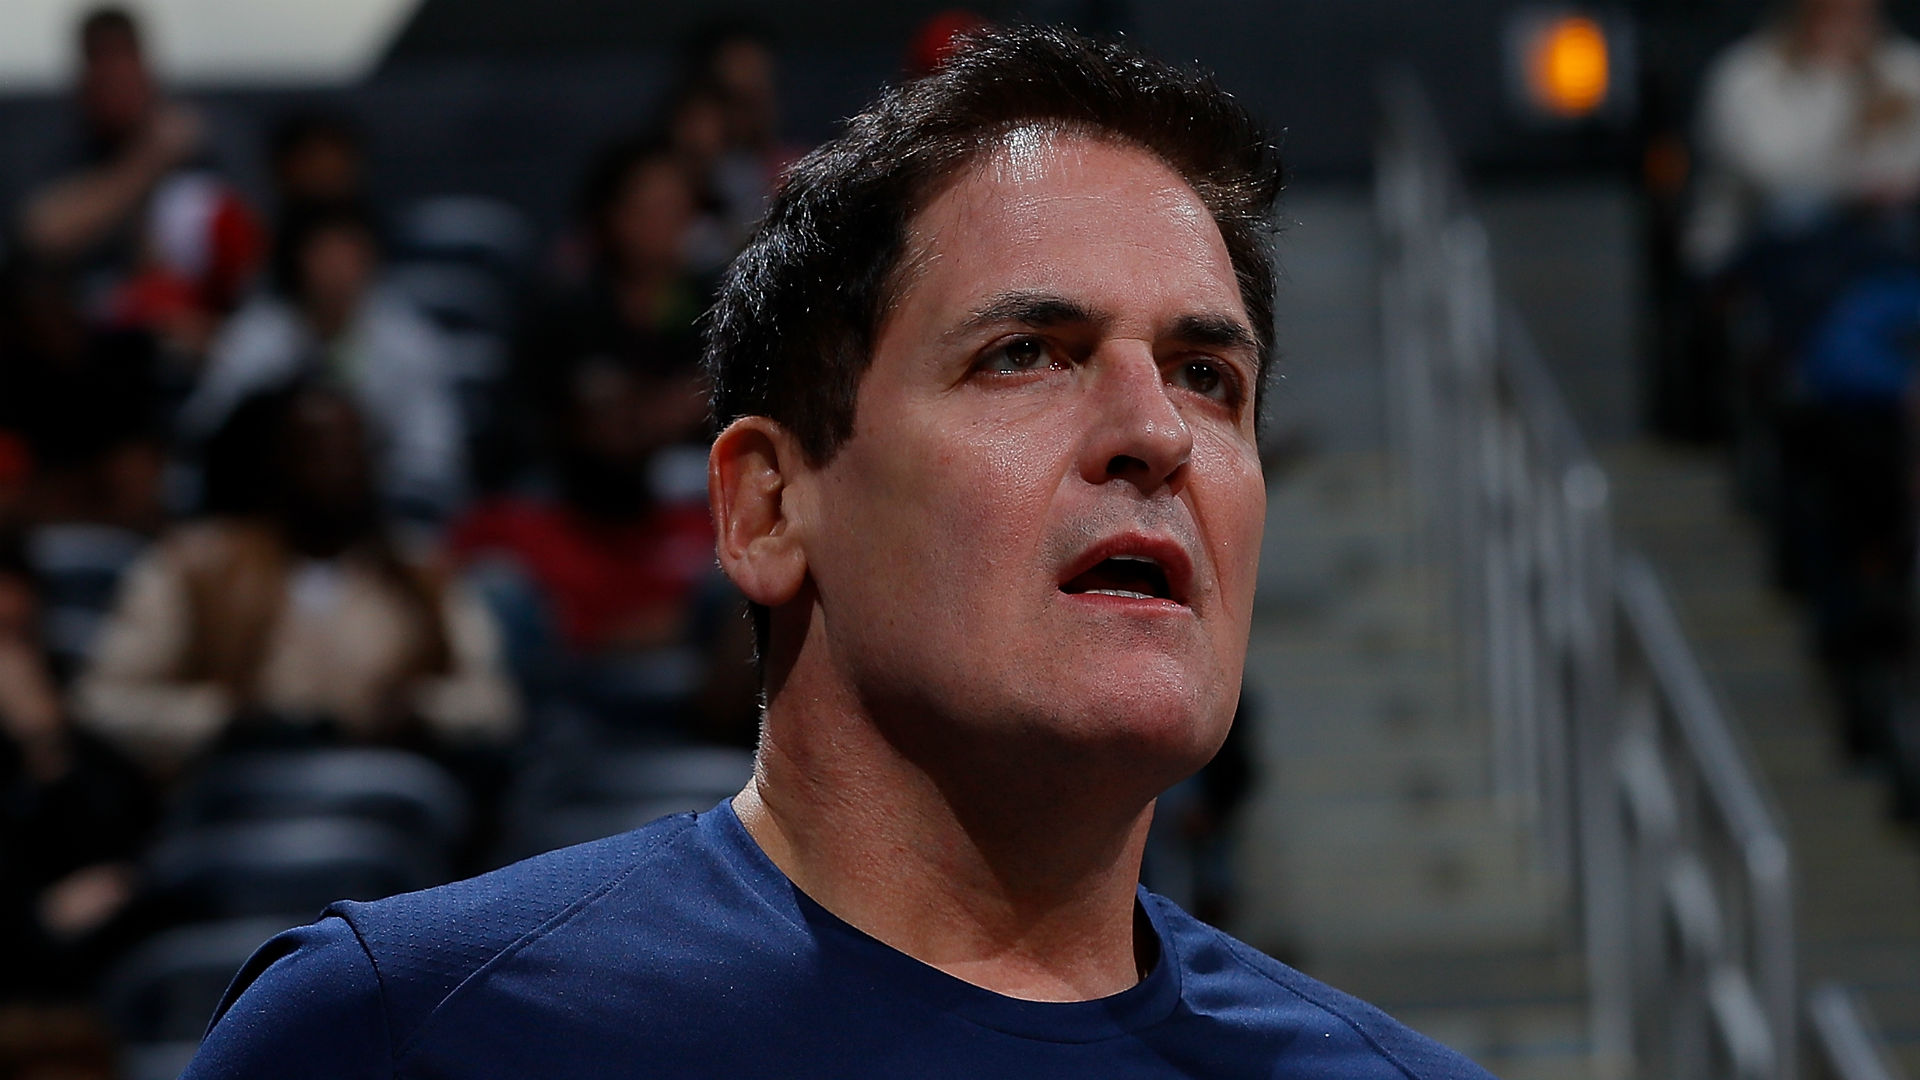 Mavericks owner Mark Cuban hopes NBA players are allowed to kneel during anthem